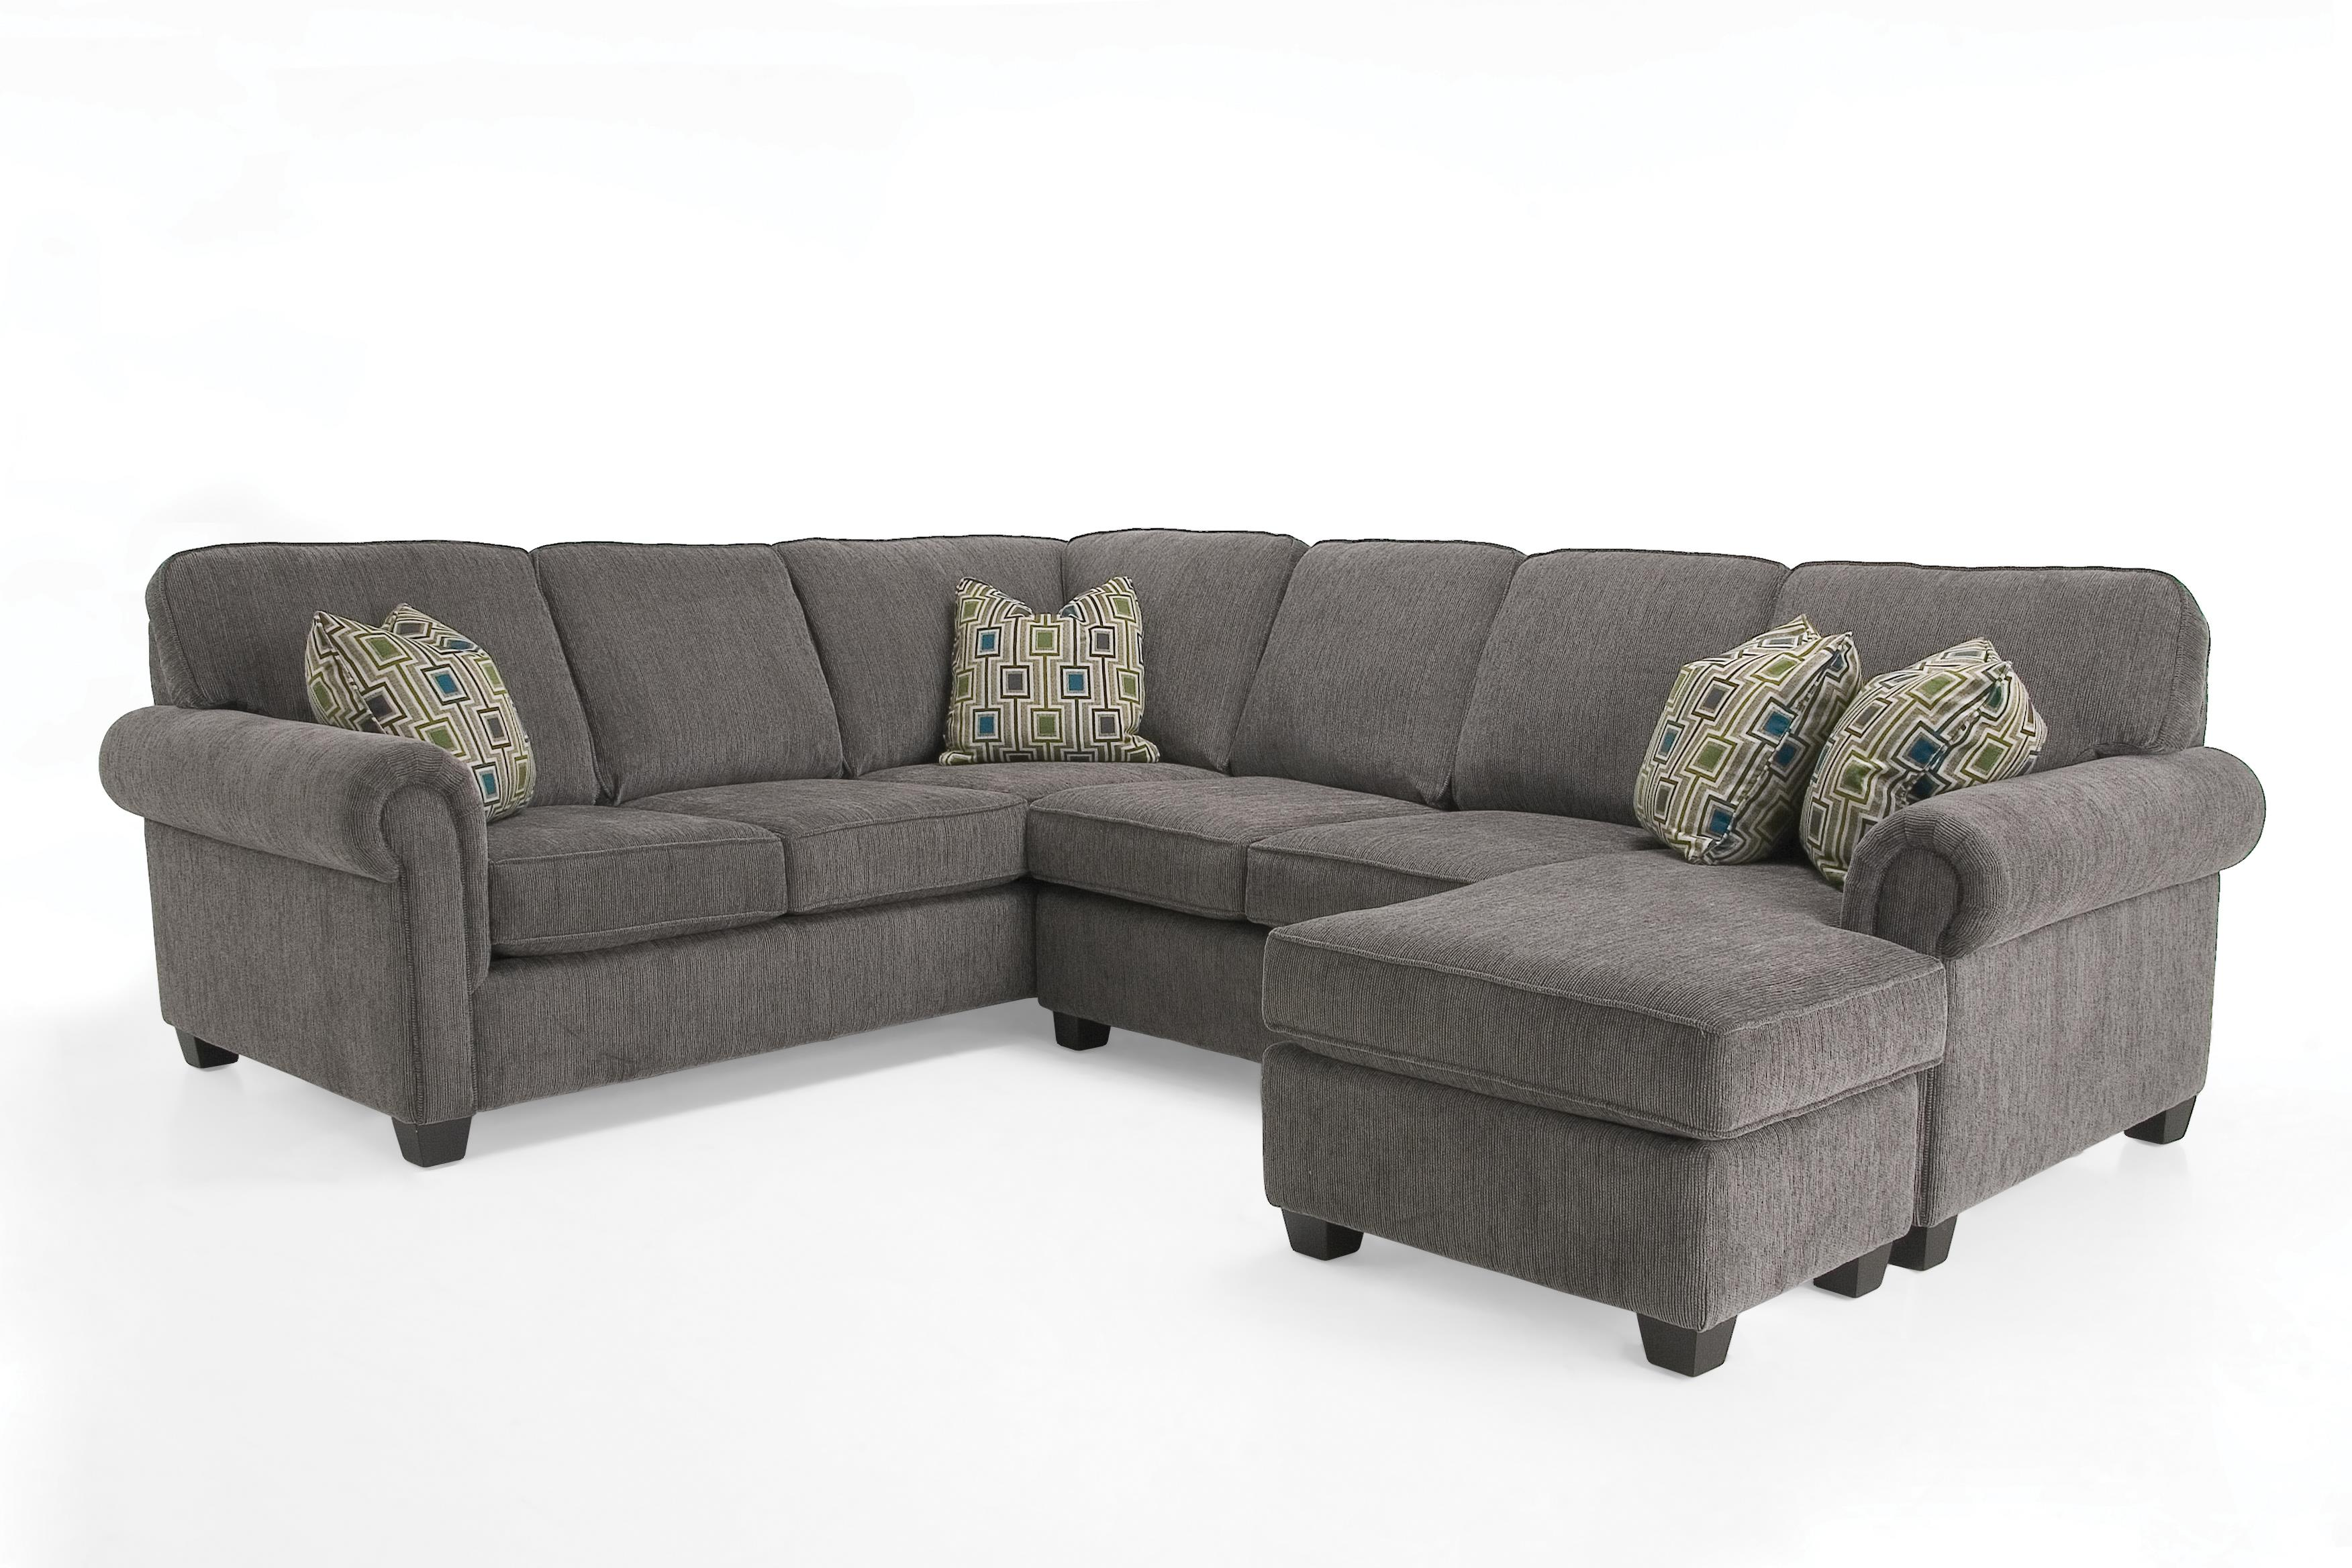 2006 Sectional Sectional Sofa Group by Decor-Rest at Wayside Furniture